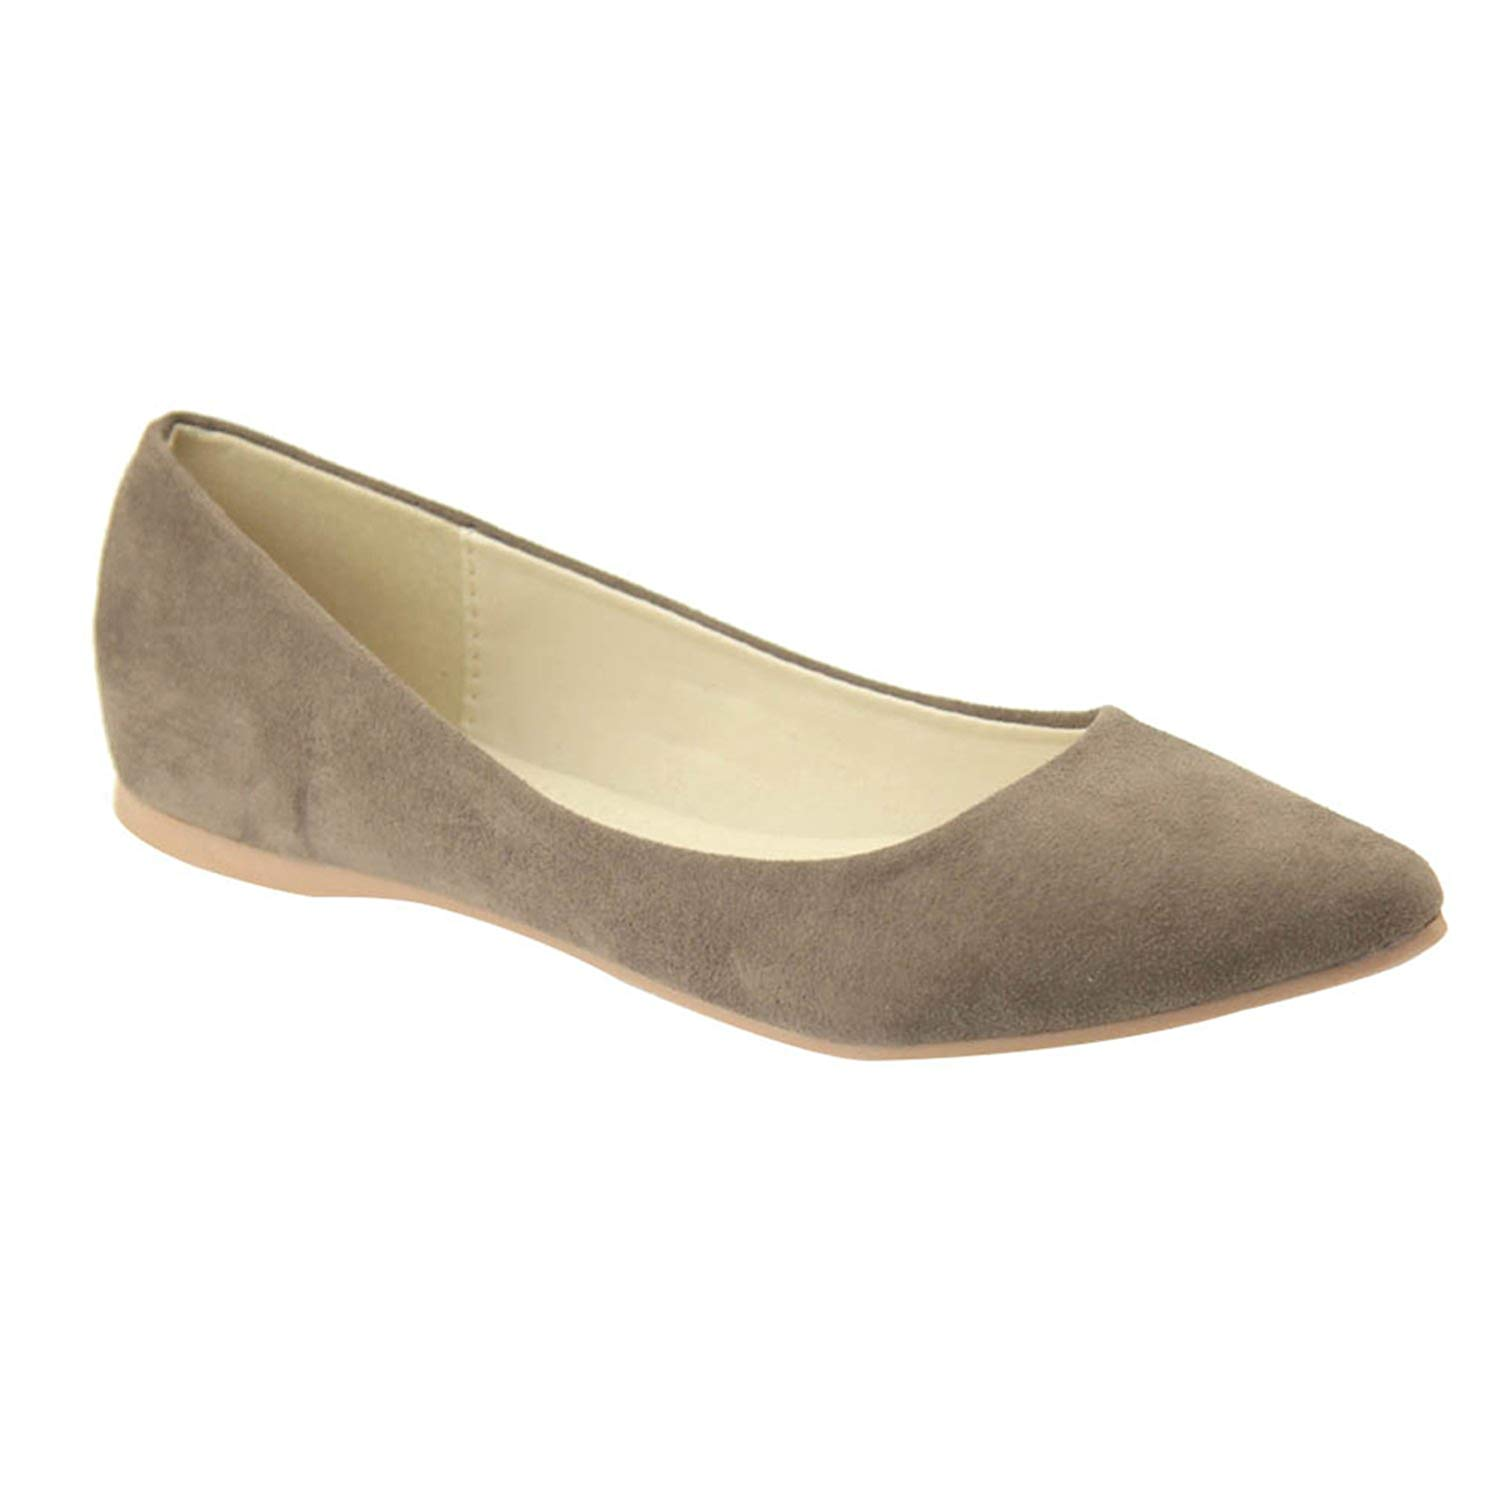 c2ad4cfcc27b9 Get Quotations · Women's Classic Pointy Toe Ballet Flat Shoes Soft Casual  Dressy Slip on Loafer Flats